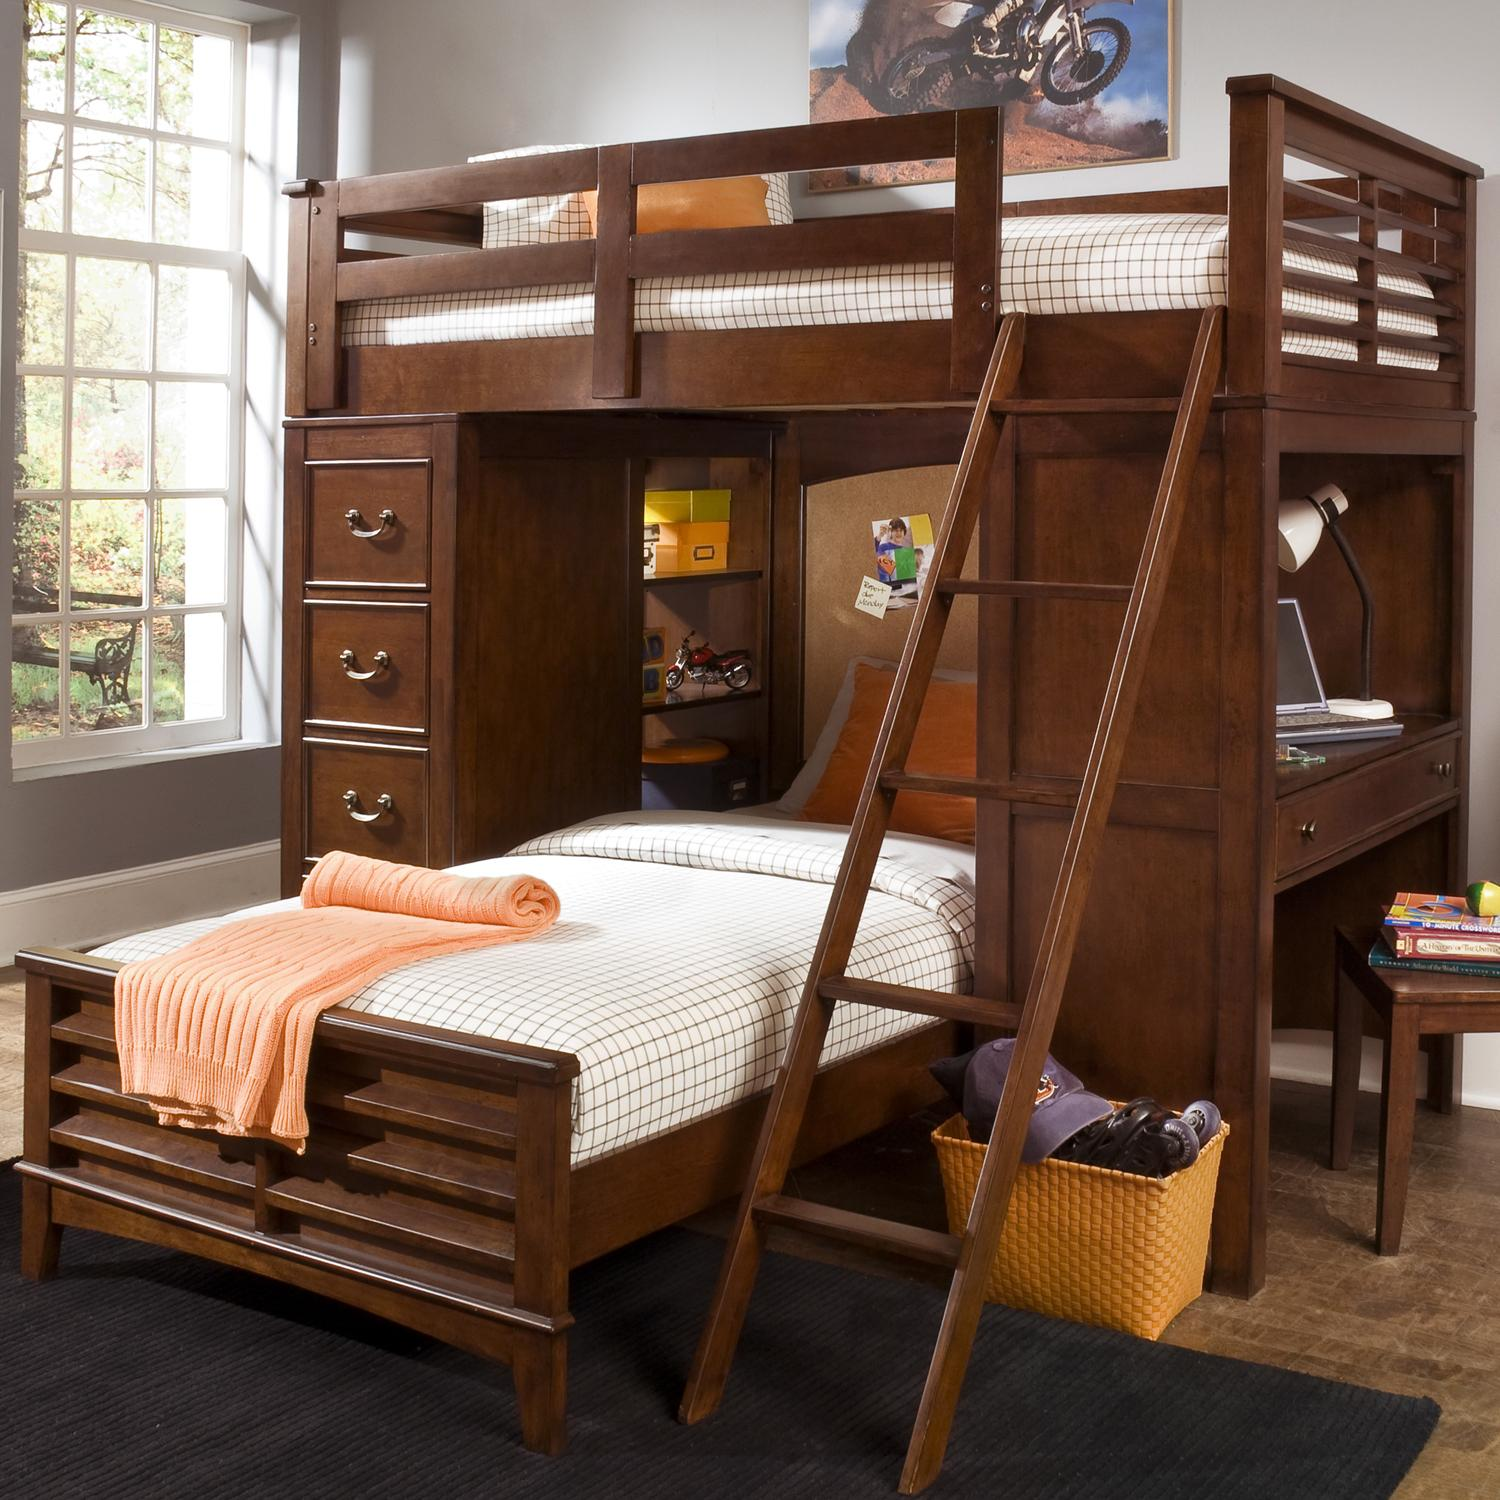 Bed With Desk Chelsea Square Youth Twin Loft Bed Unit With Built In Desk And Chest By Liberty Furniture At Rotmans